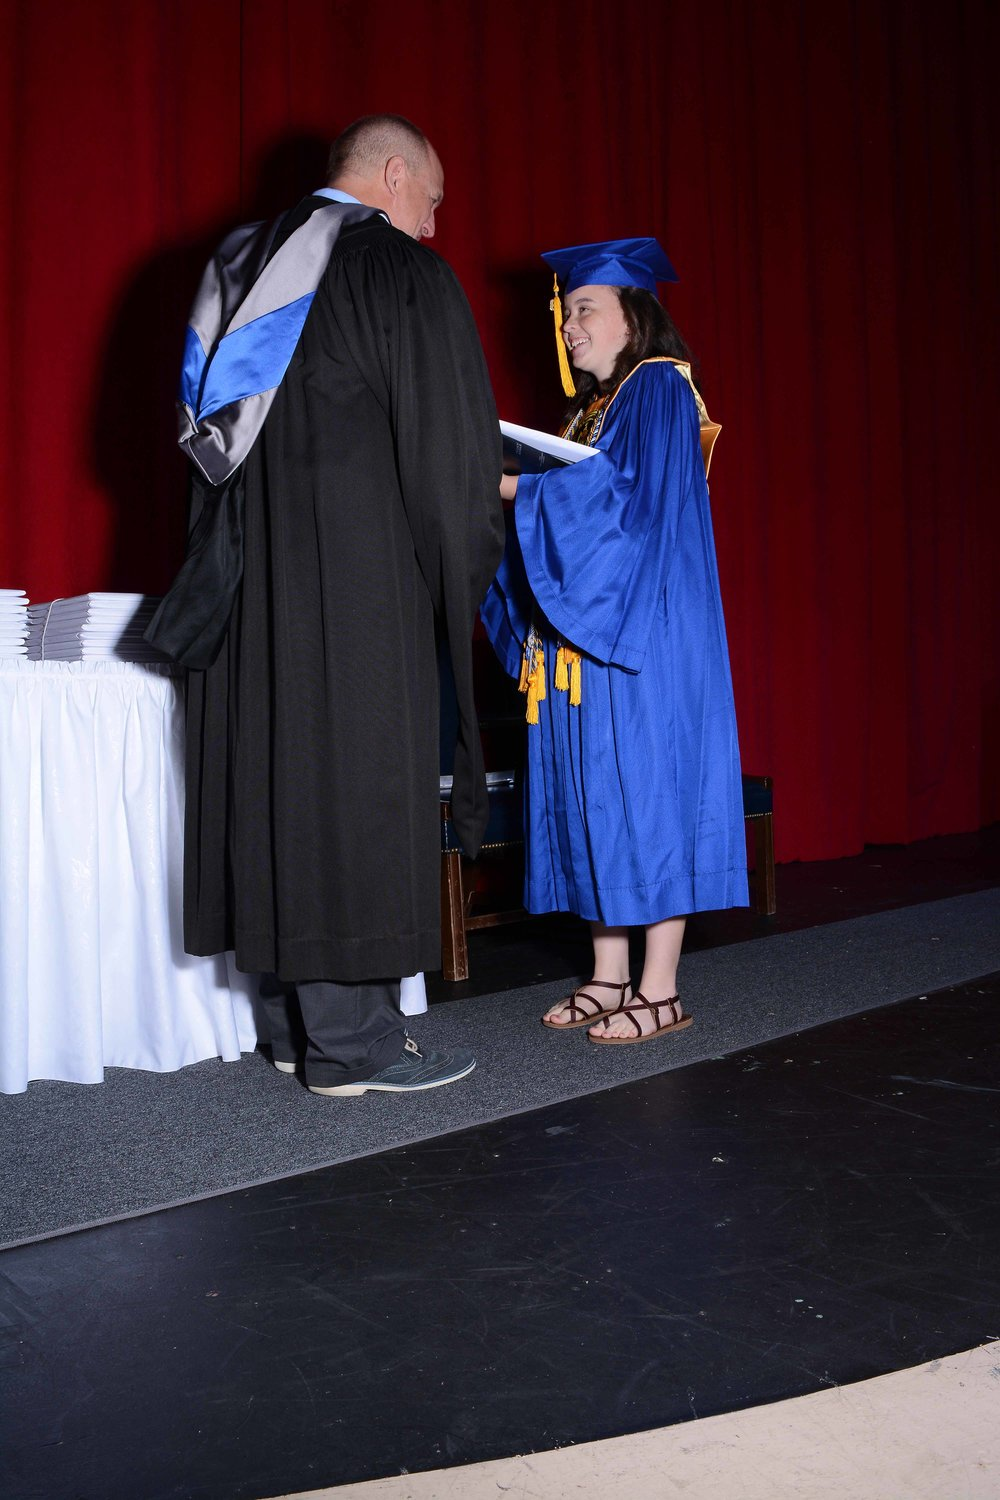 May14 Commencement14.jpg